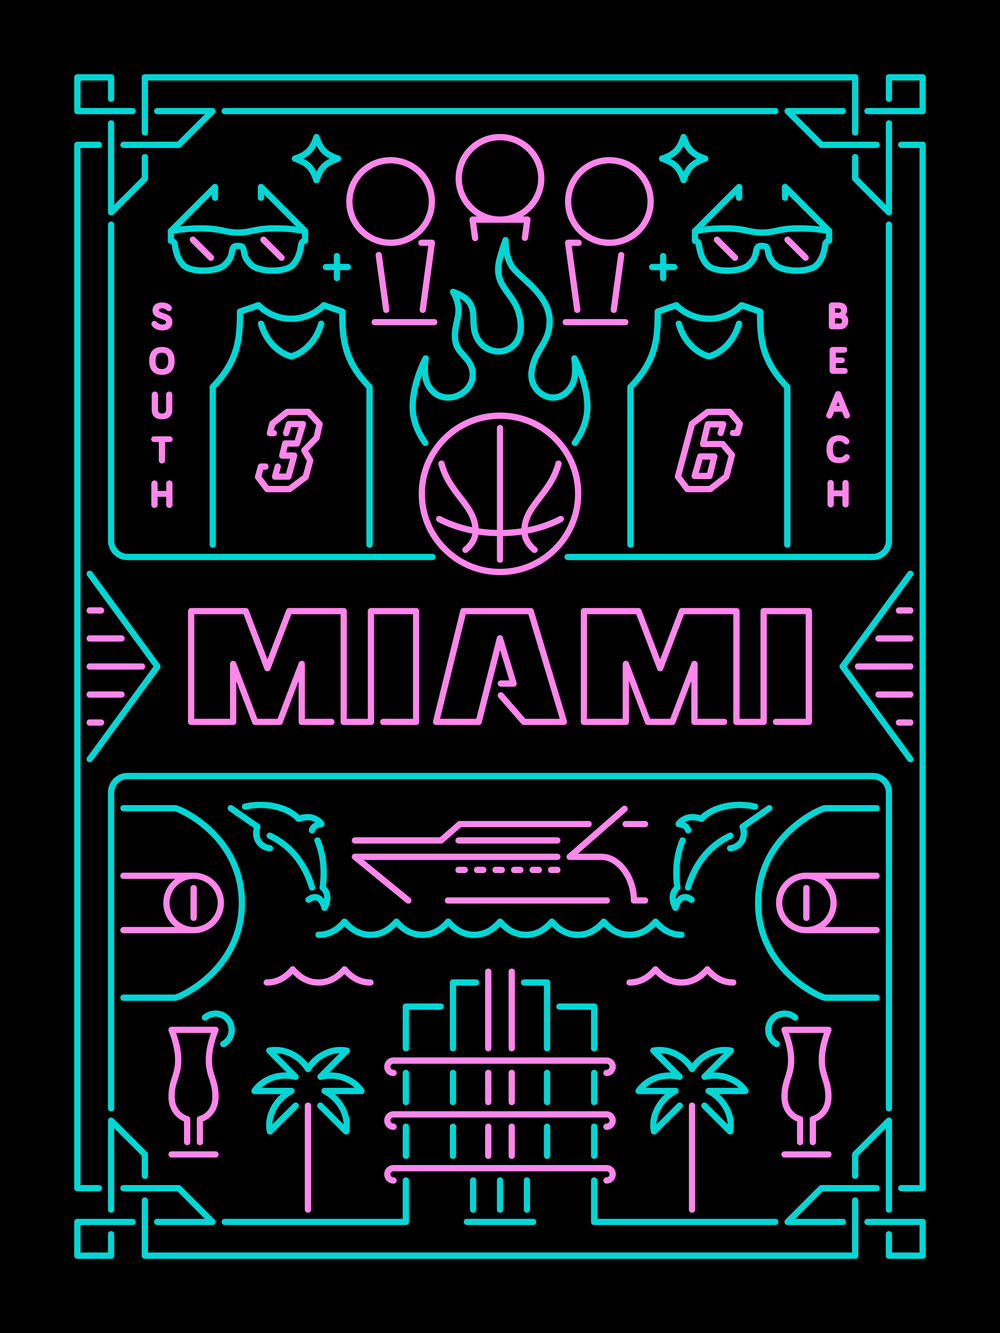 miami-basketball-elias-stein.png